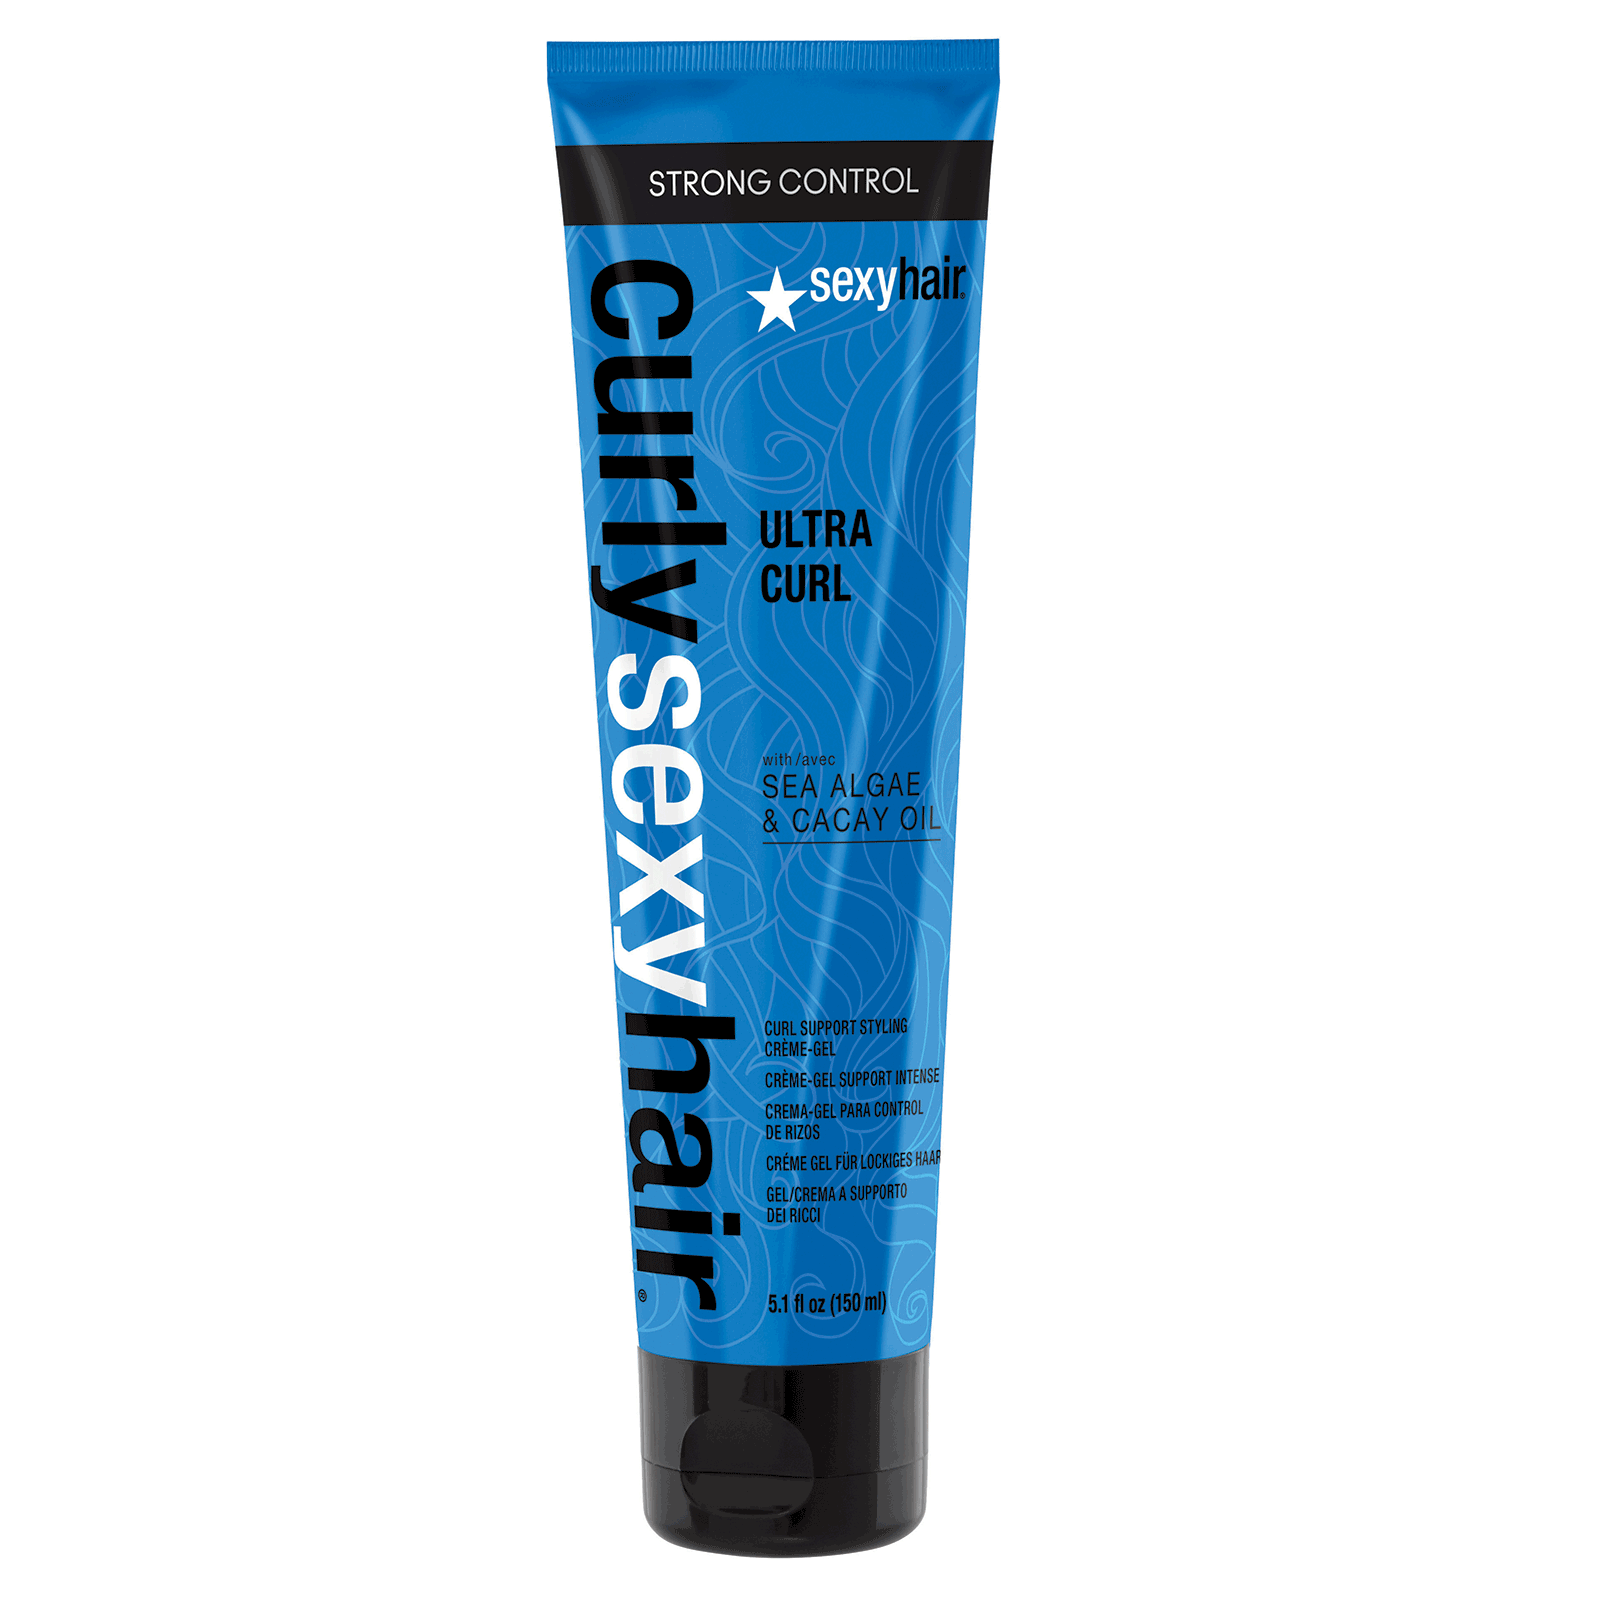 Curly Sexy Hair - Ultra Curl Styling Creme-Gel